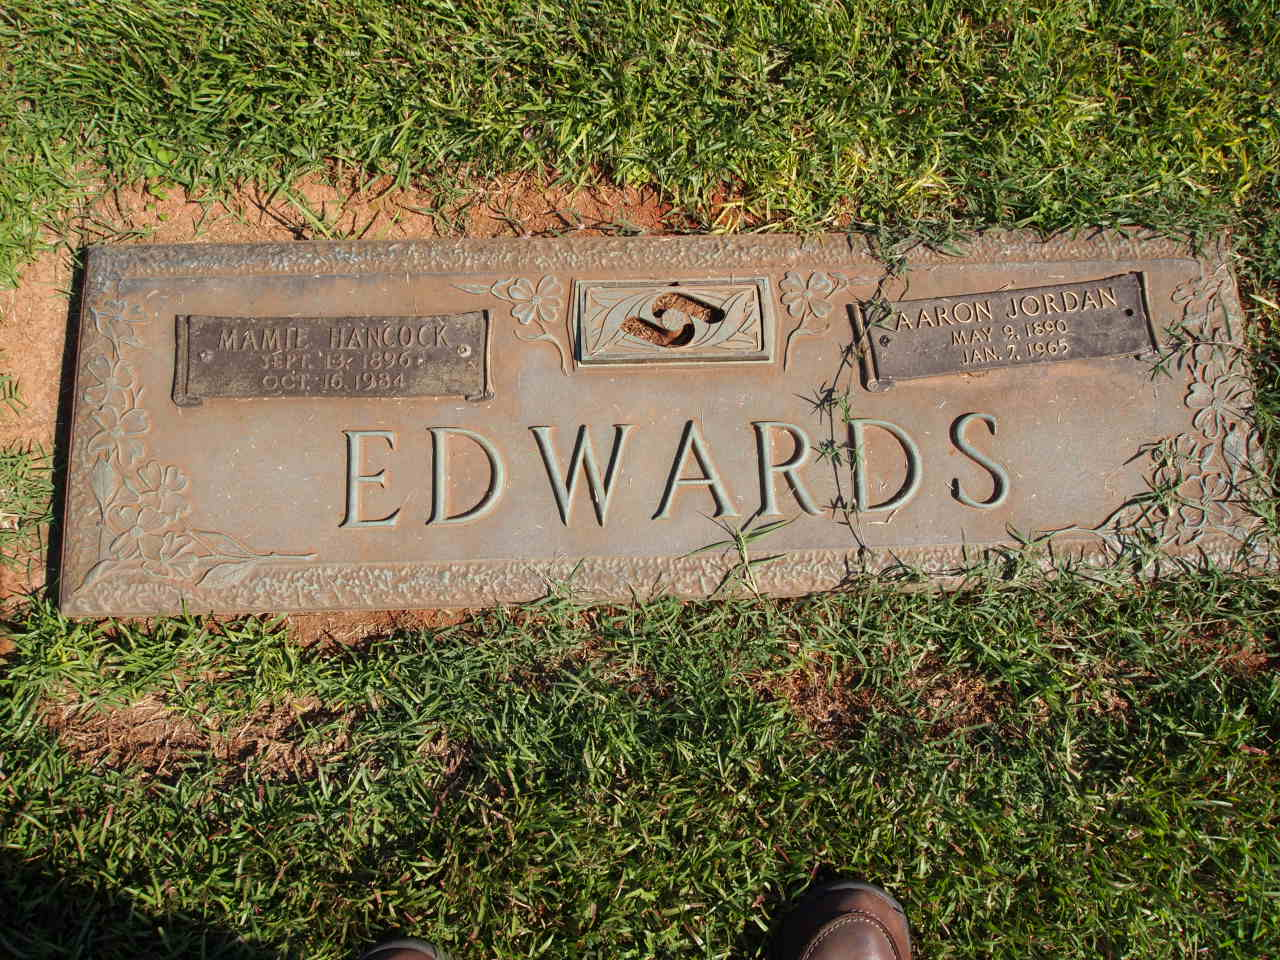 Aaron Jordan Edwards, Sr